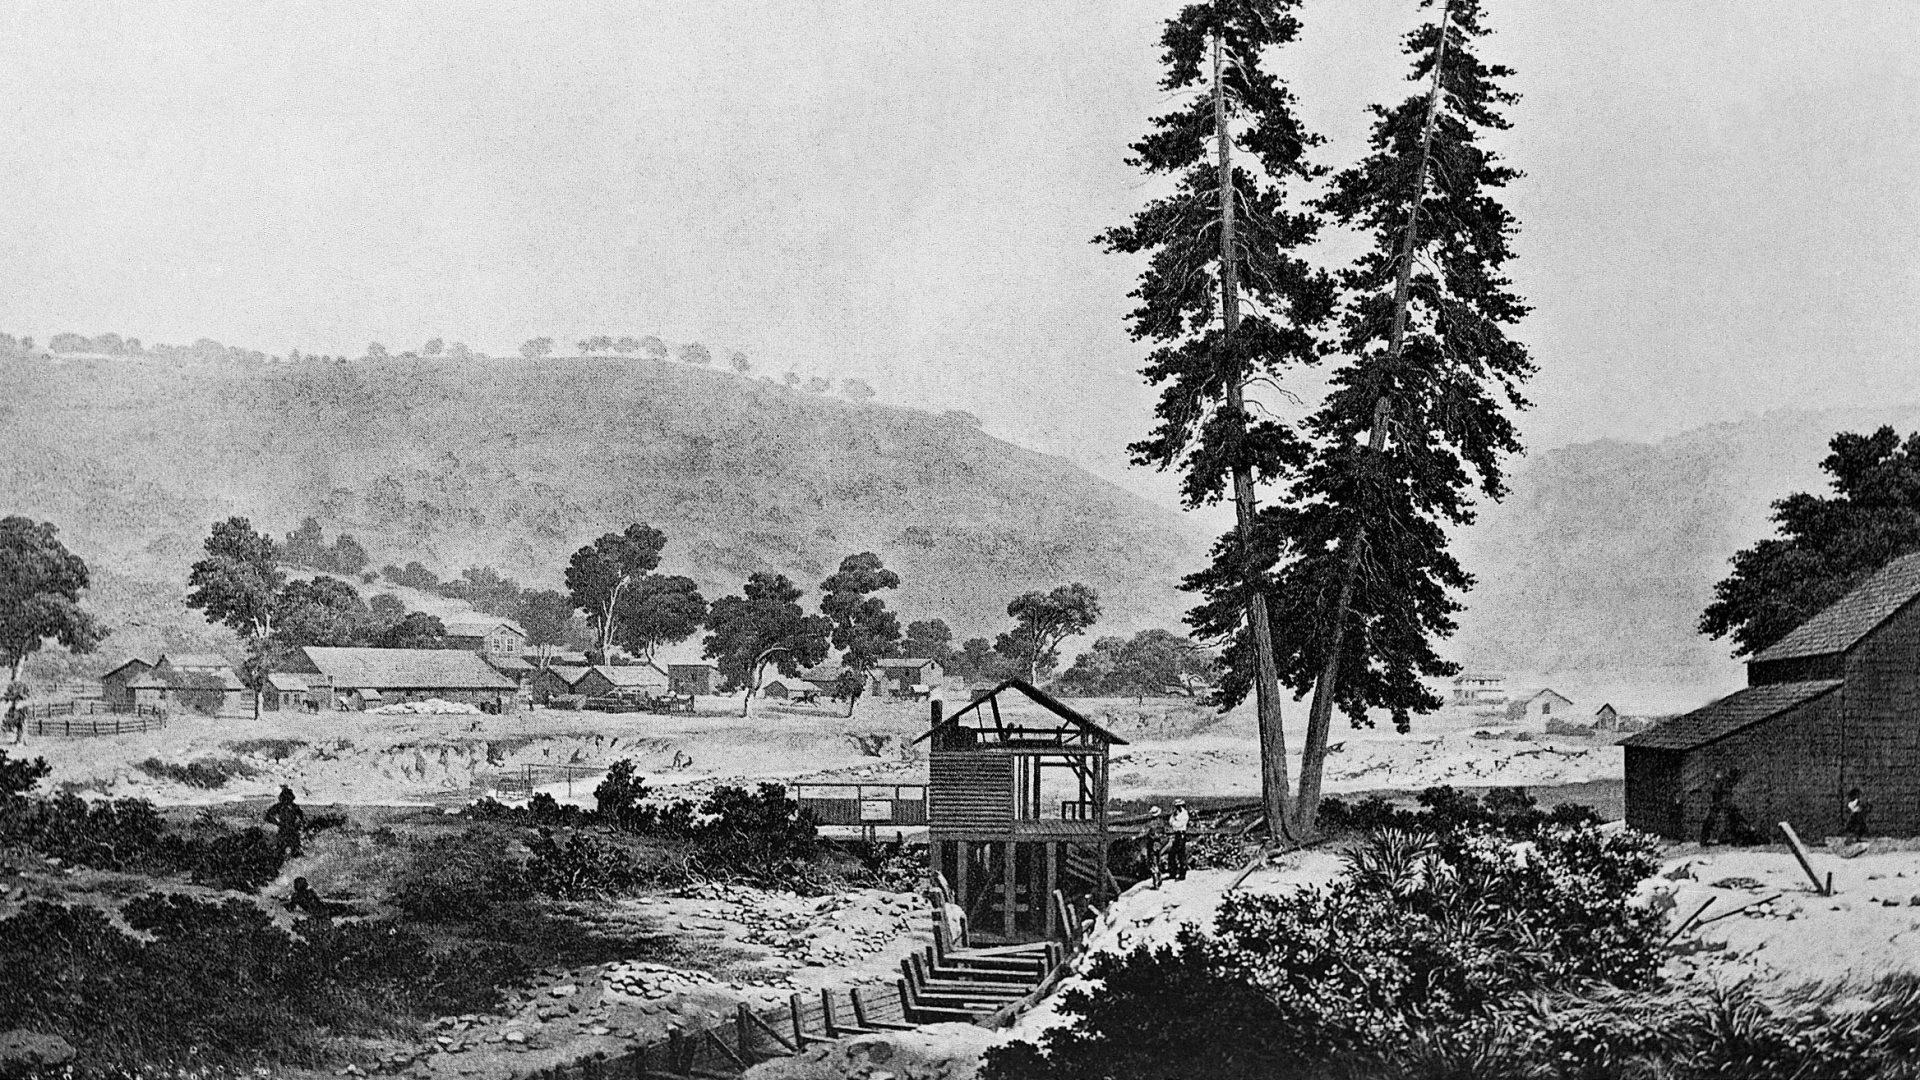 Illustration depicting Sutter's Mill, where New Jersey prospector James Marshall discovered gold in 1848, sparking the California Gold Rush. (Credit: Bettmann Archive/Getty Images)